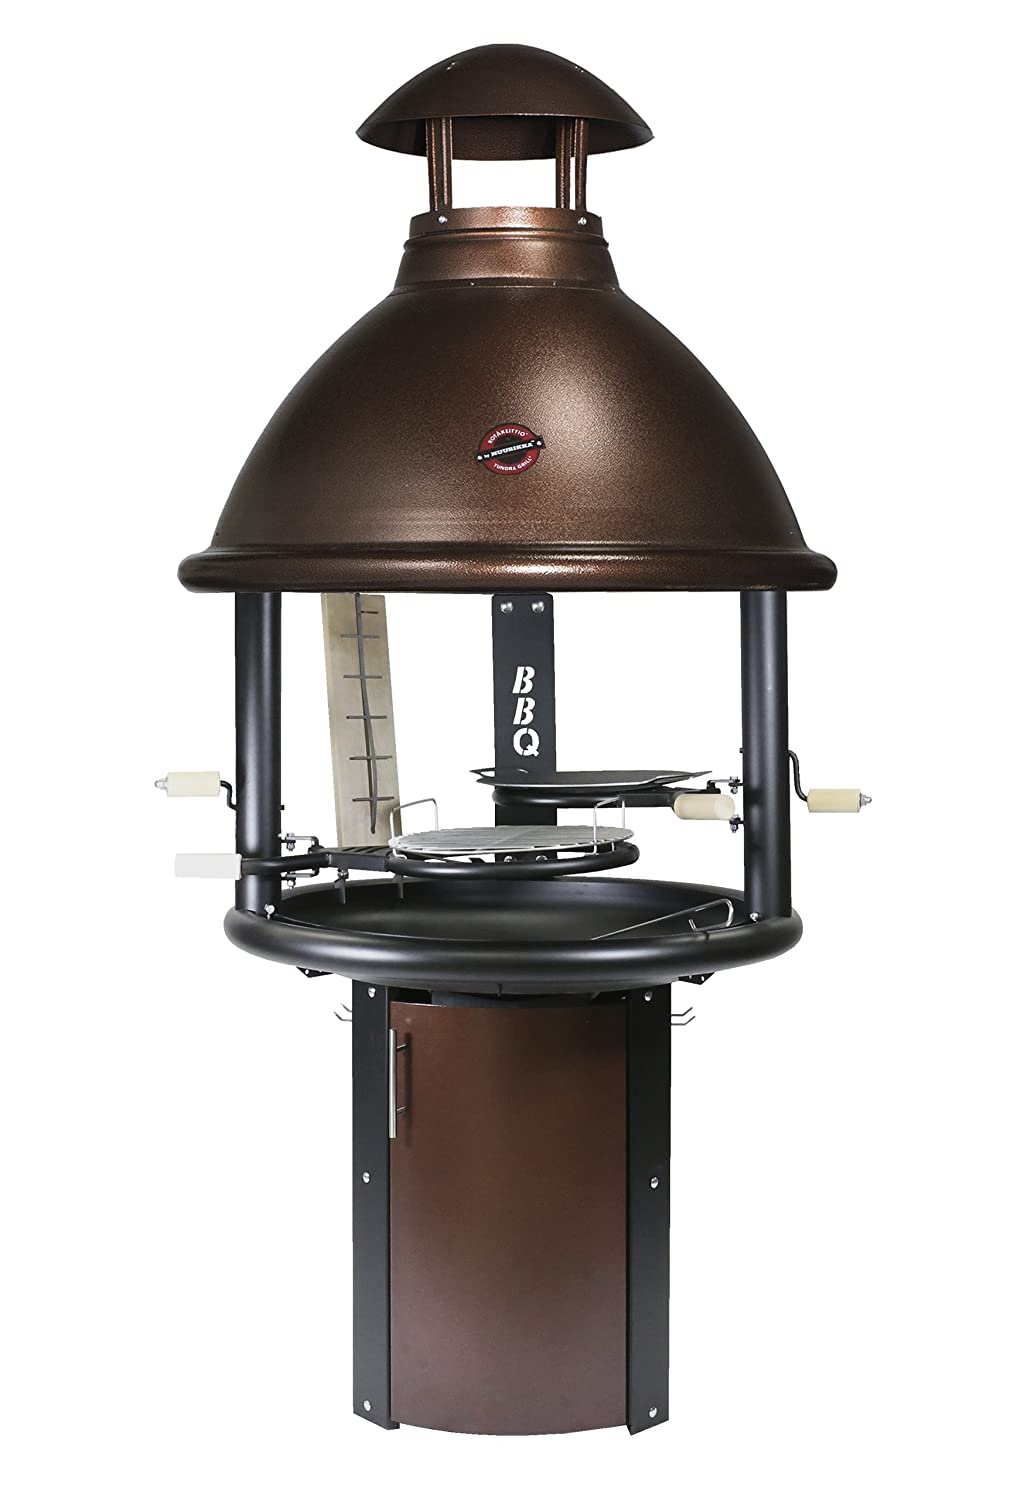 Muurikka Tundra Bbq High Model Outdoor Grill Fireplace Copper 30 X